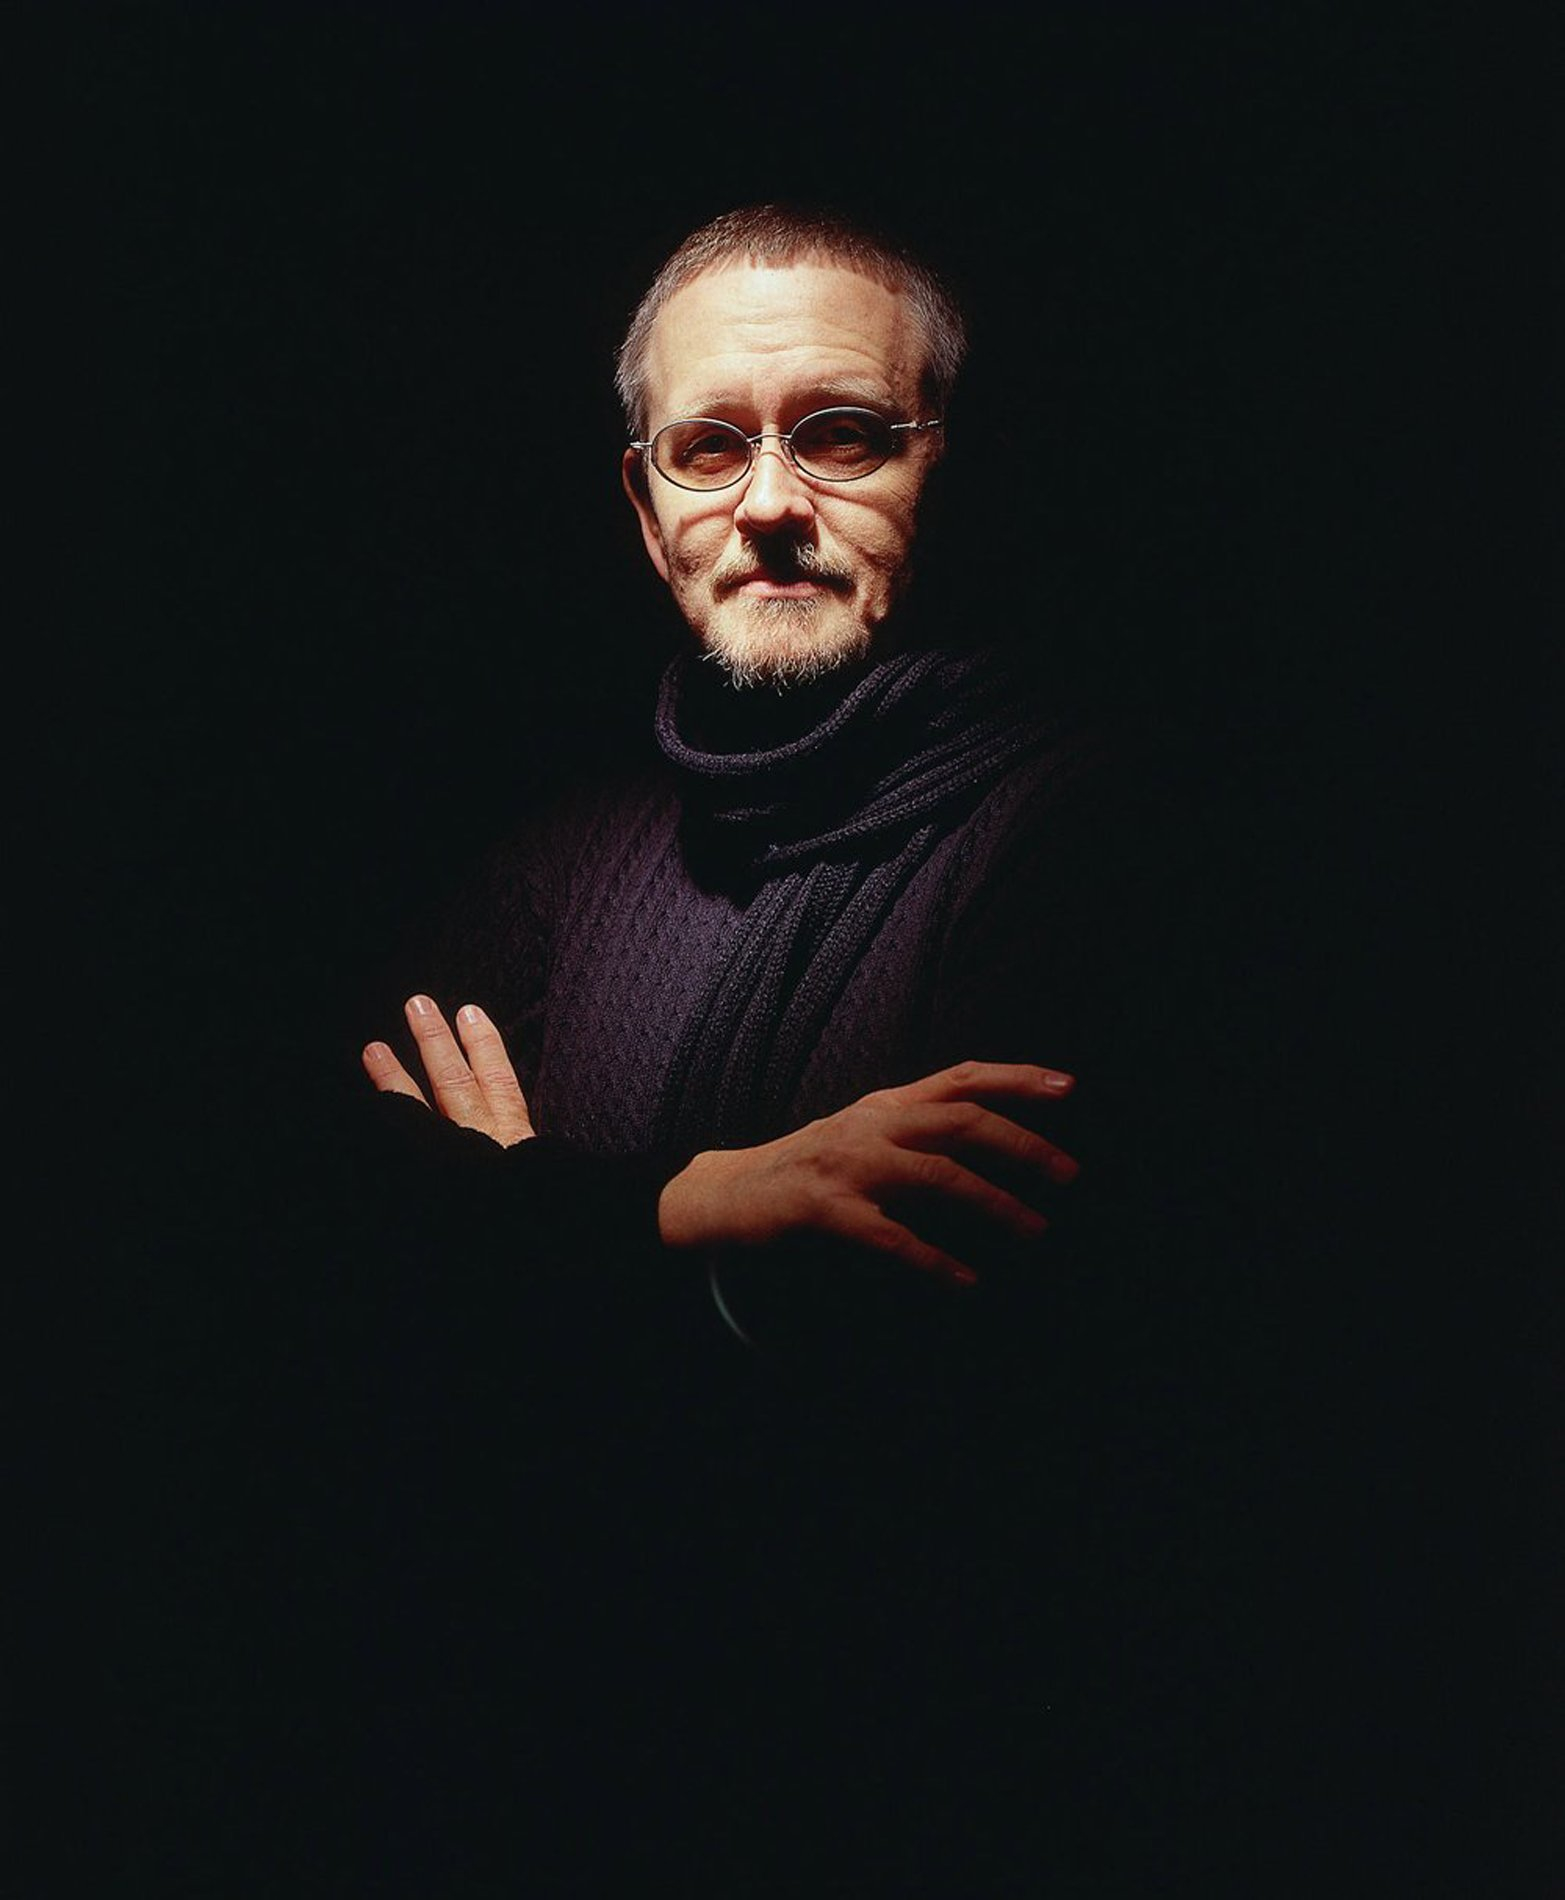 Ce nu știam despre Orson Scott Card